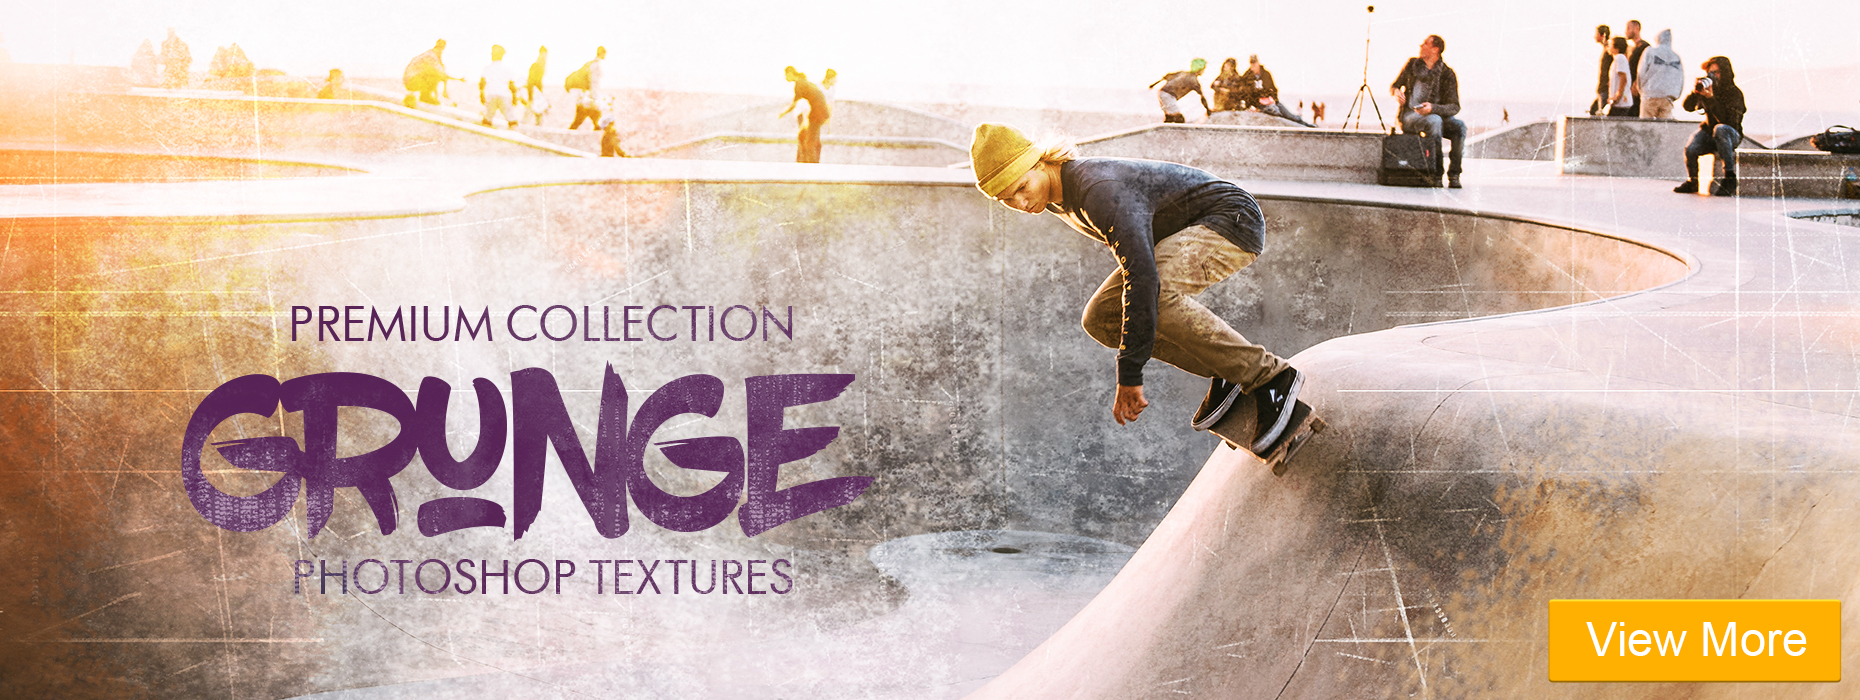 grunge effect photoshop free vintage portrait lightroom presets banner girl